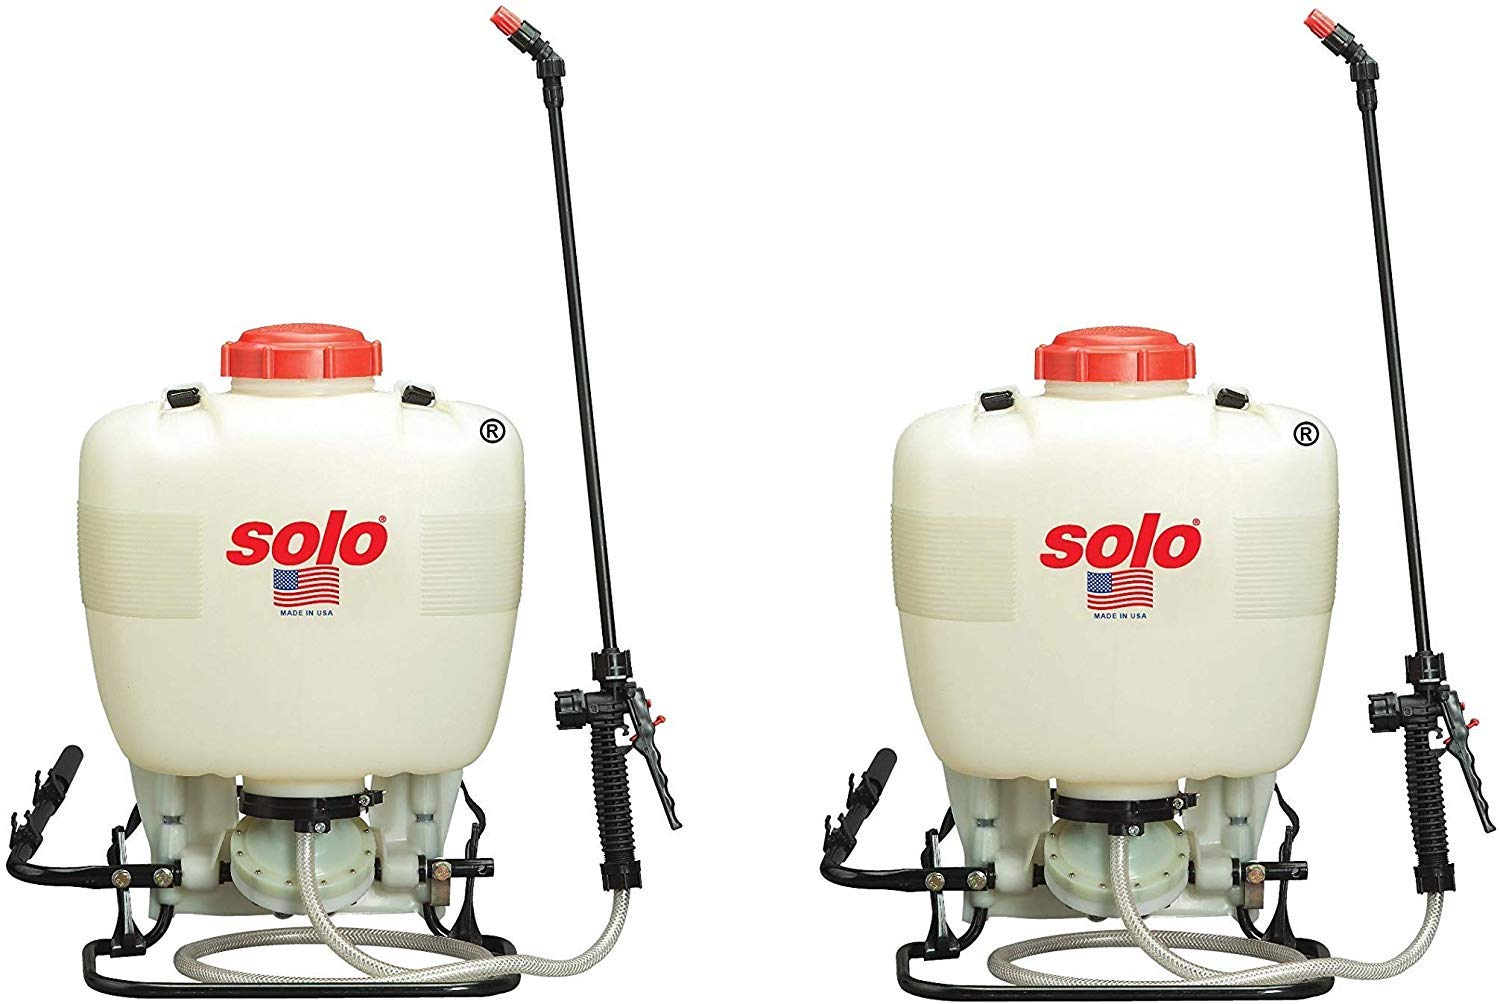 SOLO 475-B Diaphragm Pump Backpack Sprayer, 4-Gallon, Bleach Resistant Pump Assembly (Pack of 2) by SOLO